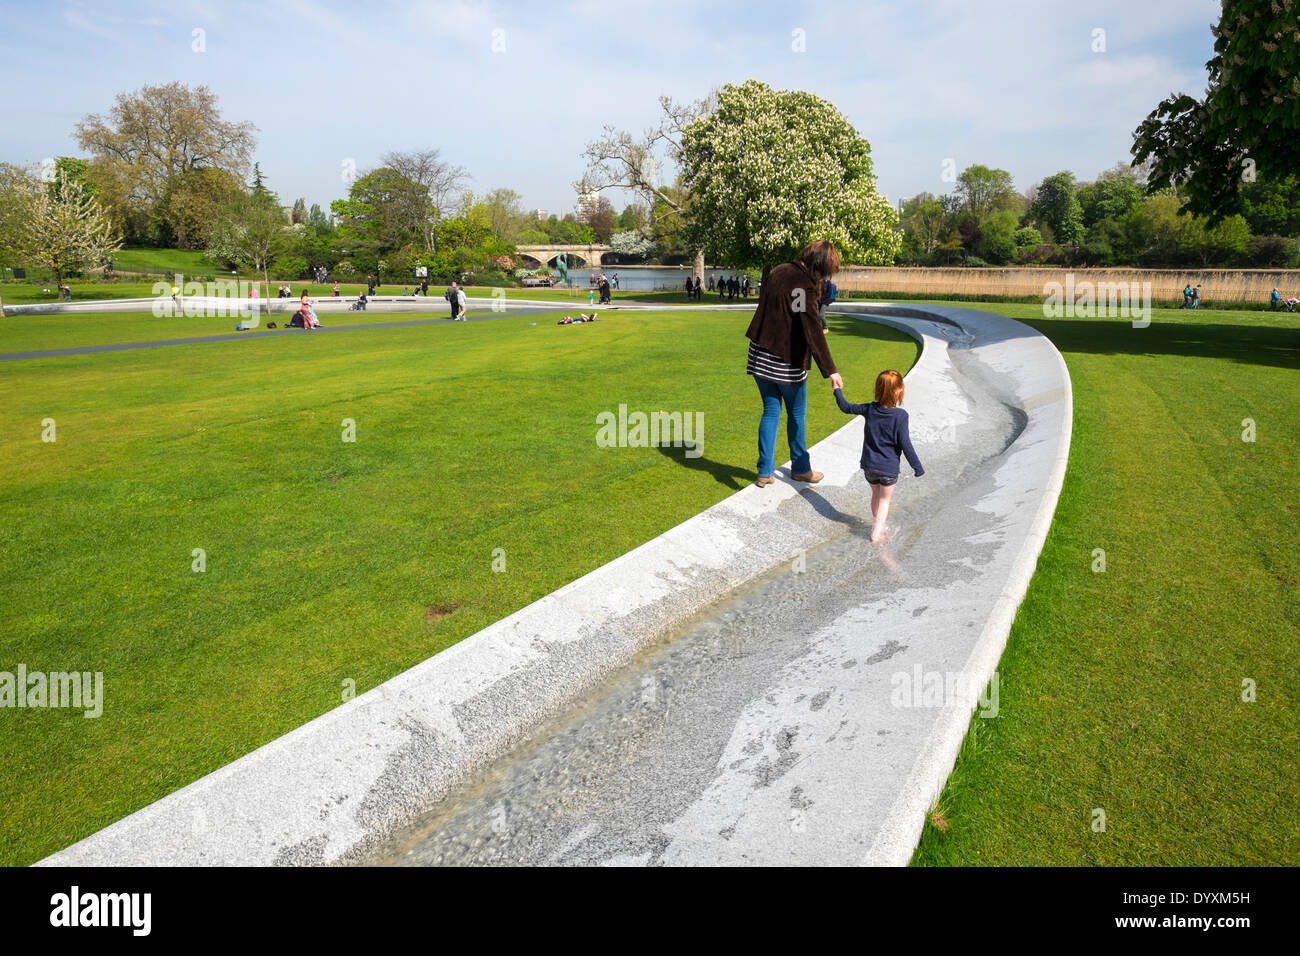 Princess Diana memorial fountain in Hyde Park London United Kingdom - Stock Image